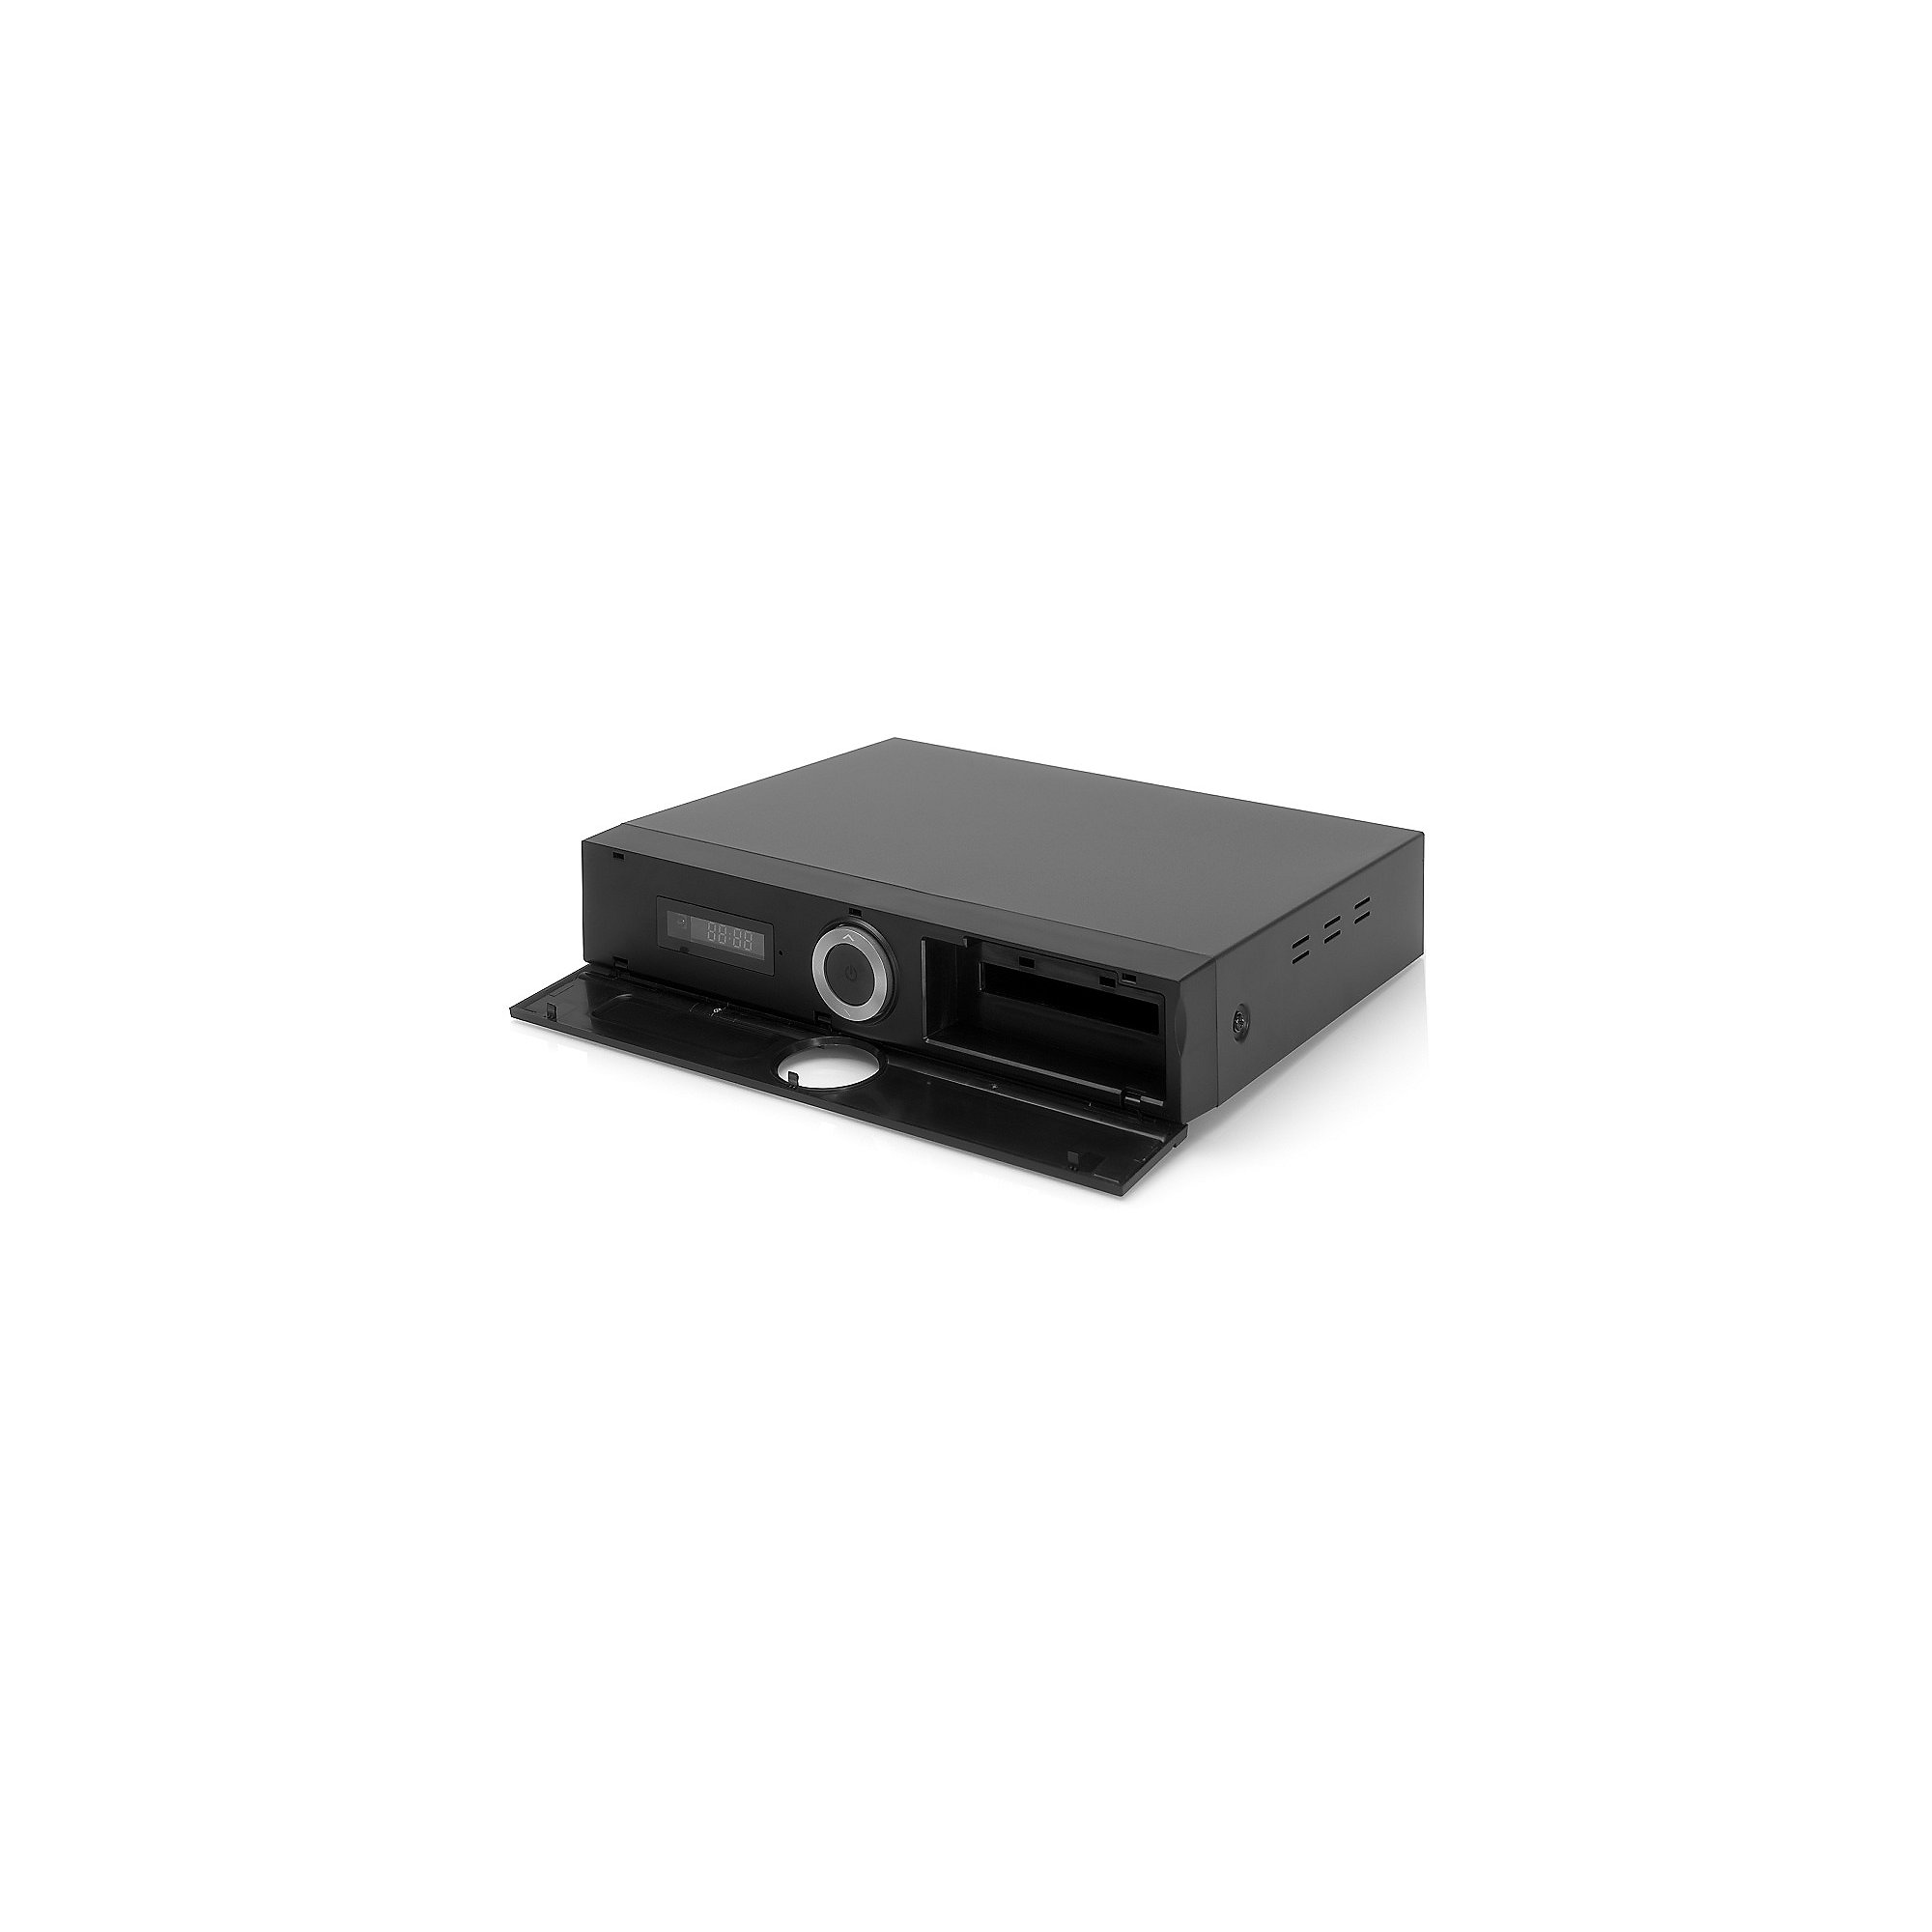 Xoro HRT 8772 HDD DVB-T2HD PVR Twin-Receiver Freenet TV schwarz H.265